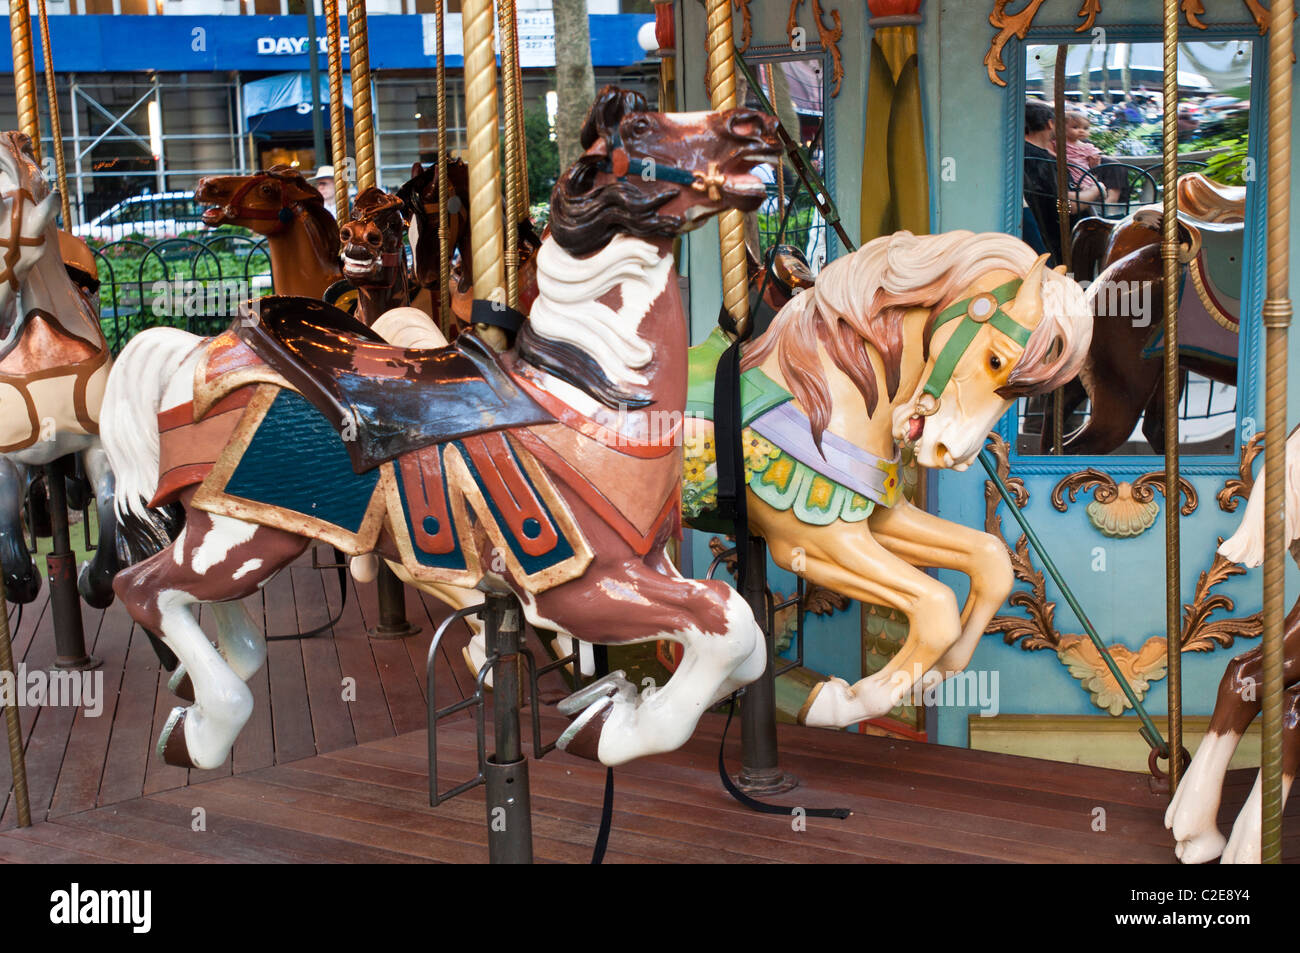 Well crafted horses at Le Carrousel in Bryant Park, Manhattan, New York City, USA - Stock Image